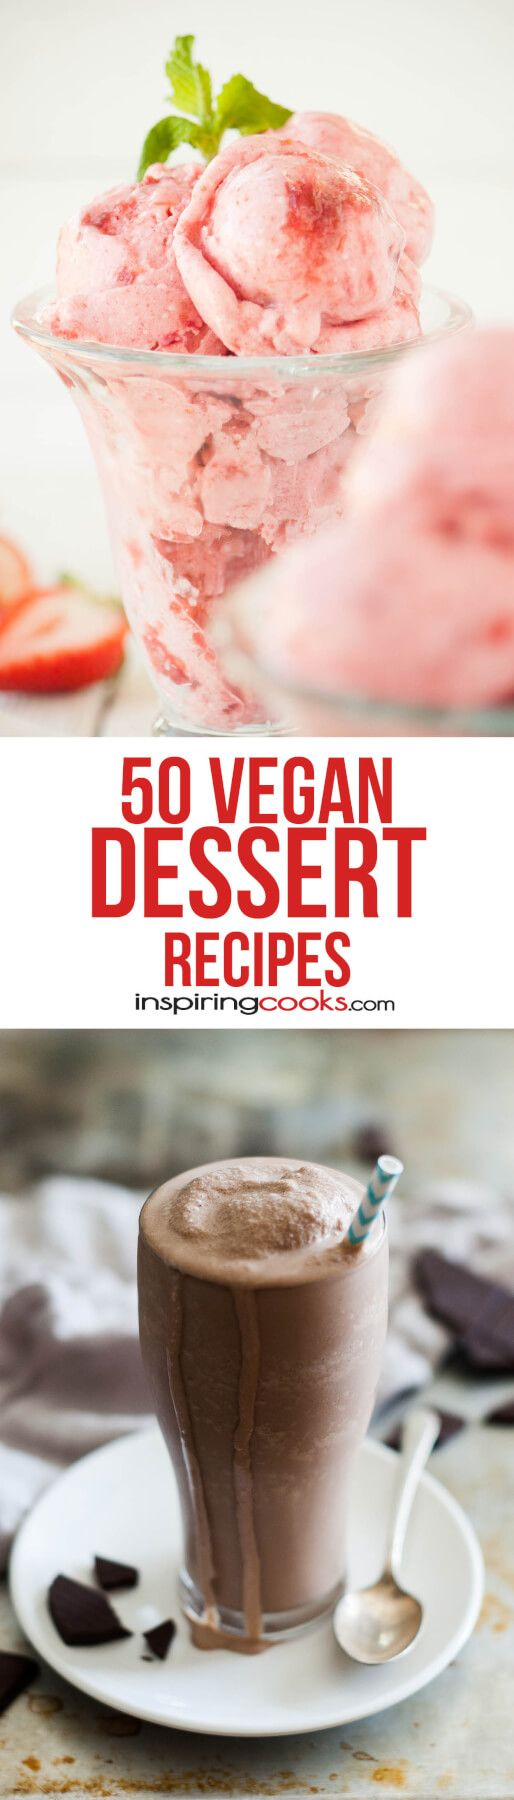 I love this huge selection of Vegan dessert recipes. I definitely want to try a bunch of these soon!